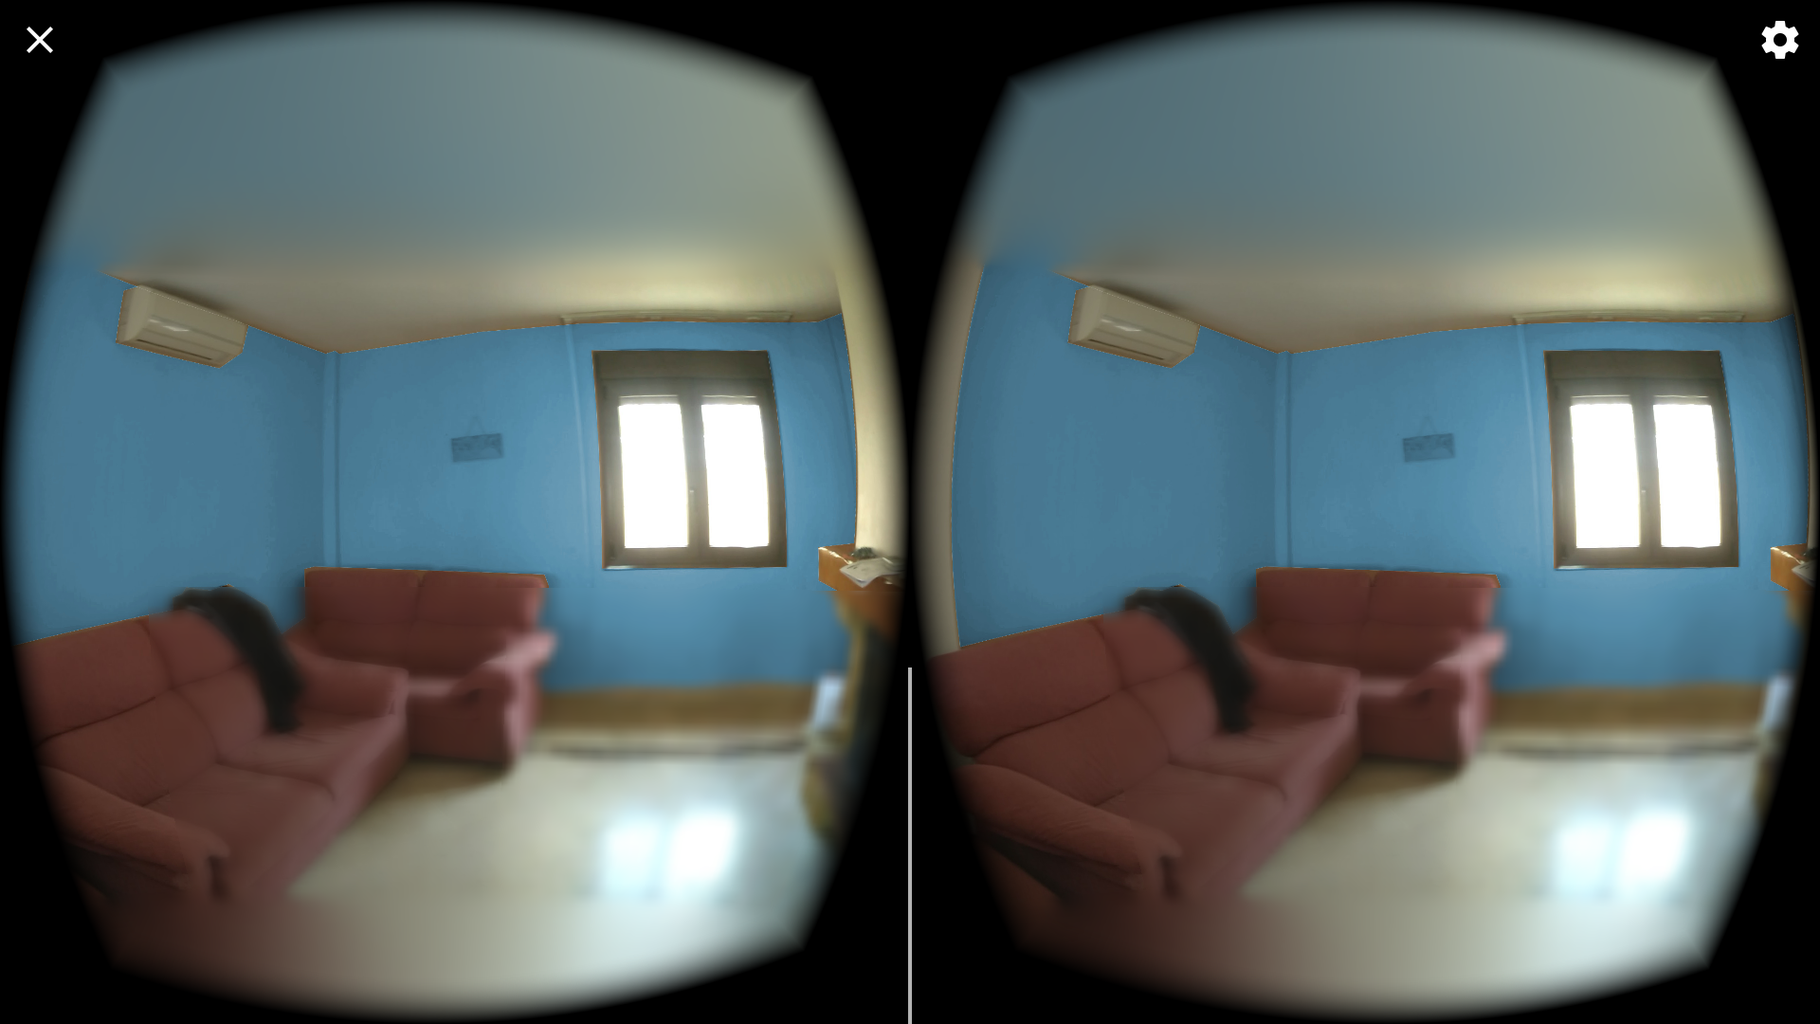 Paint Walls in VR